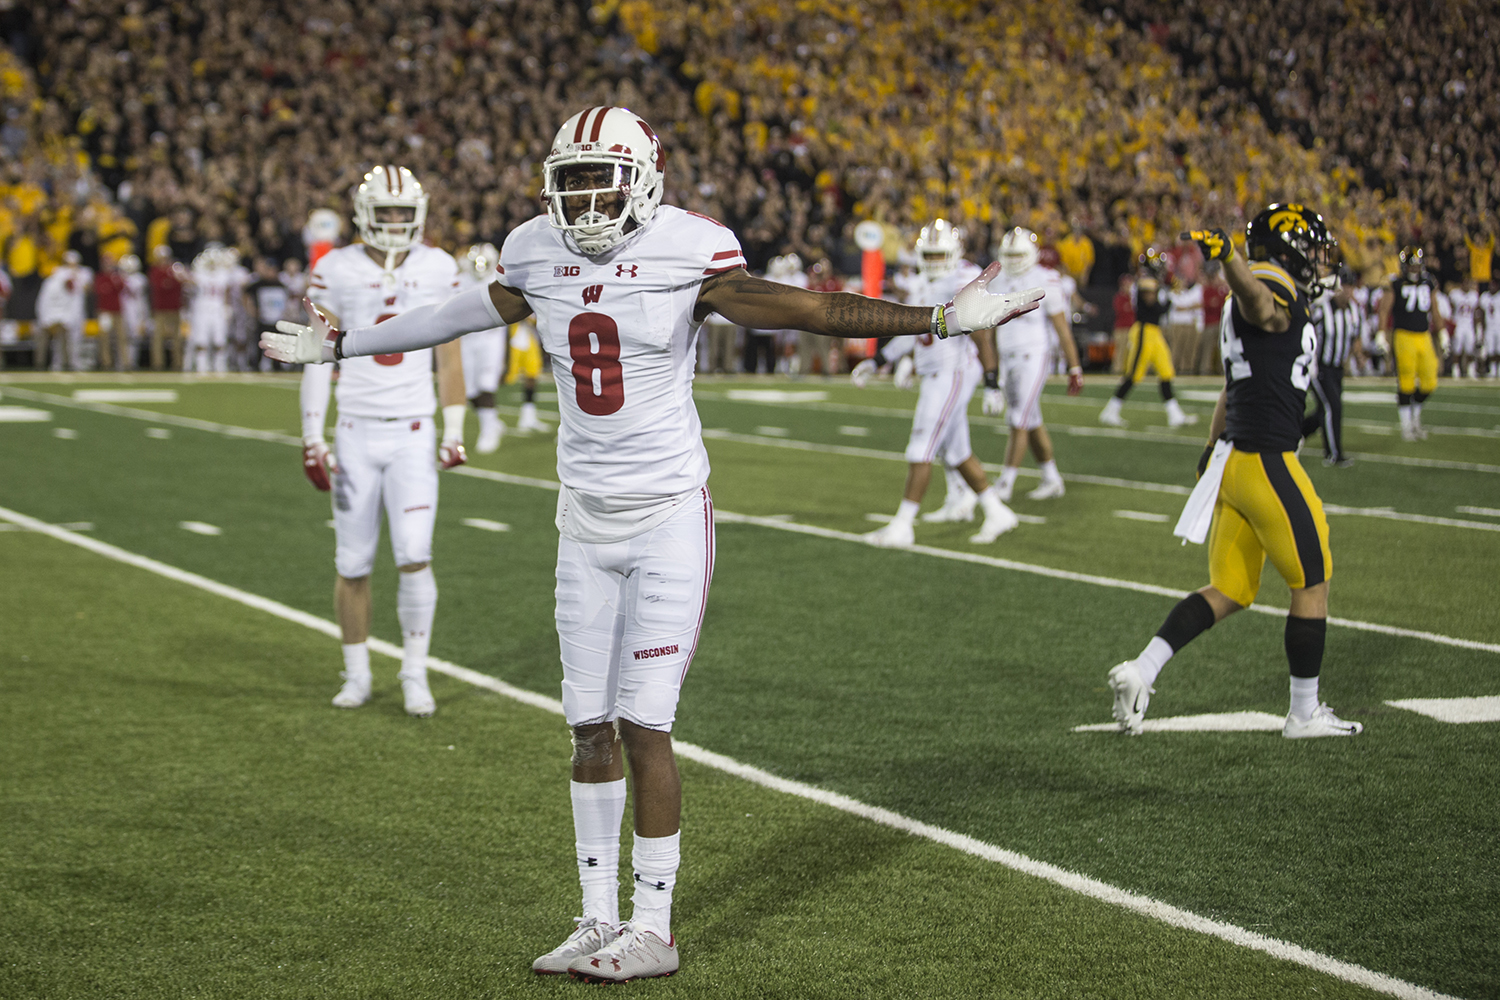 Wisconsin%27s+Deron+Harrell+reacts+to+a+penalty+during+a+football+game+between+Iowa+and+Wisconsin+on+Saturday%2C+September+22%2C+2018.+The+Badgers+defeated+the+Hawkeyes%2C+28-17.+%28Shivansh+Ahuja%2FThe+Daily+Iowan%29